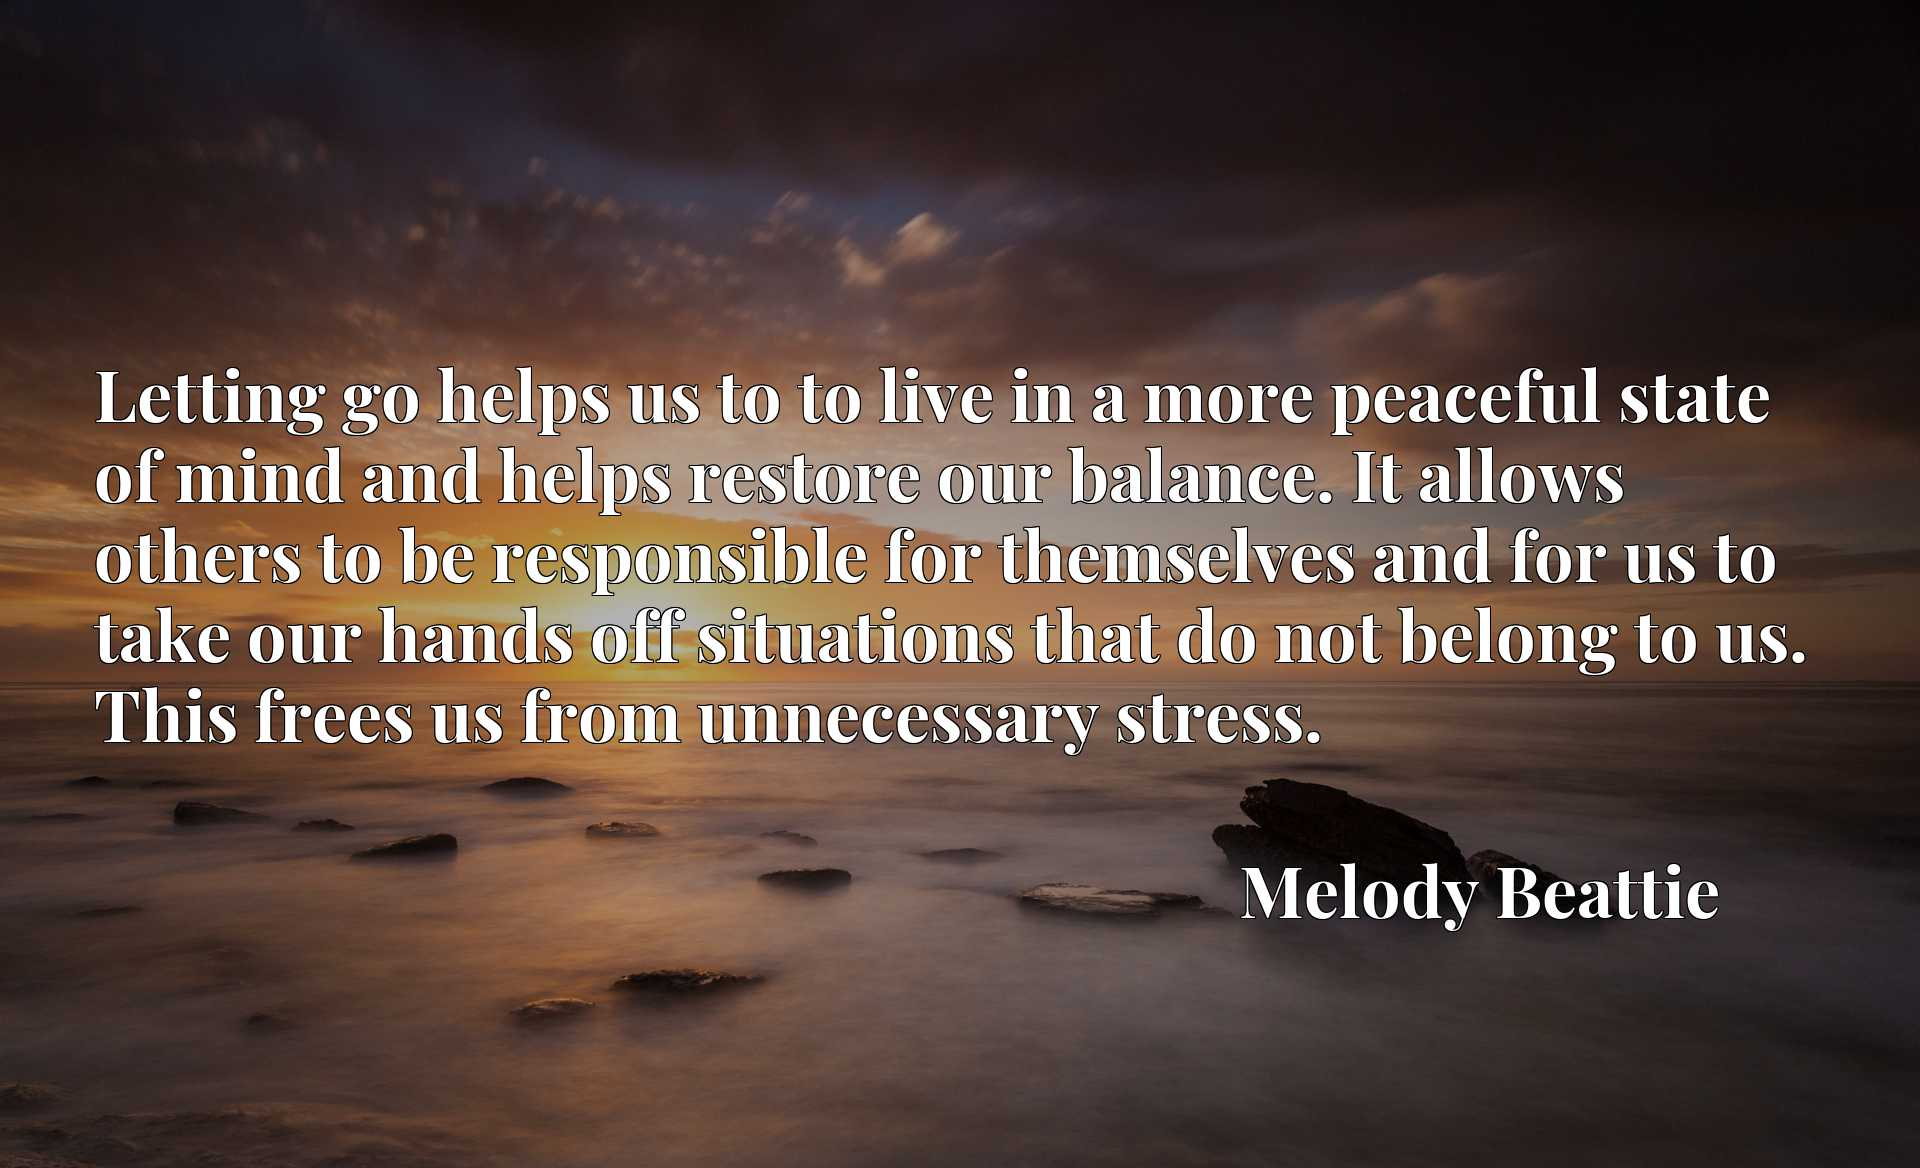 Quote Picture :Letting go helps us to to live in a more peaceful state of mind and helps restore our balance. It allows others to be responsible for themselves and for us to take our hands off situations that do not belong to us. This frees us from unnecessary stress.